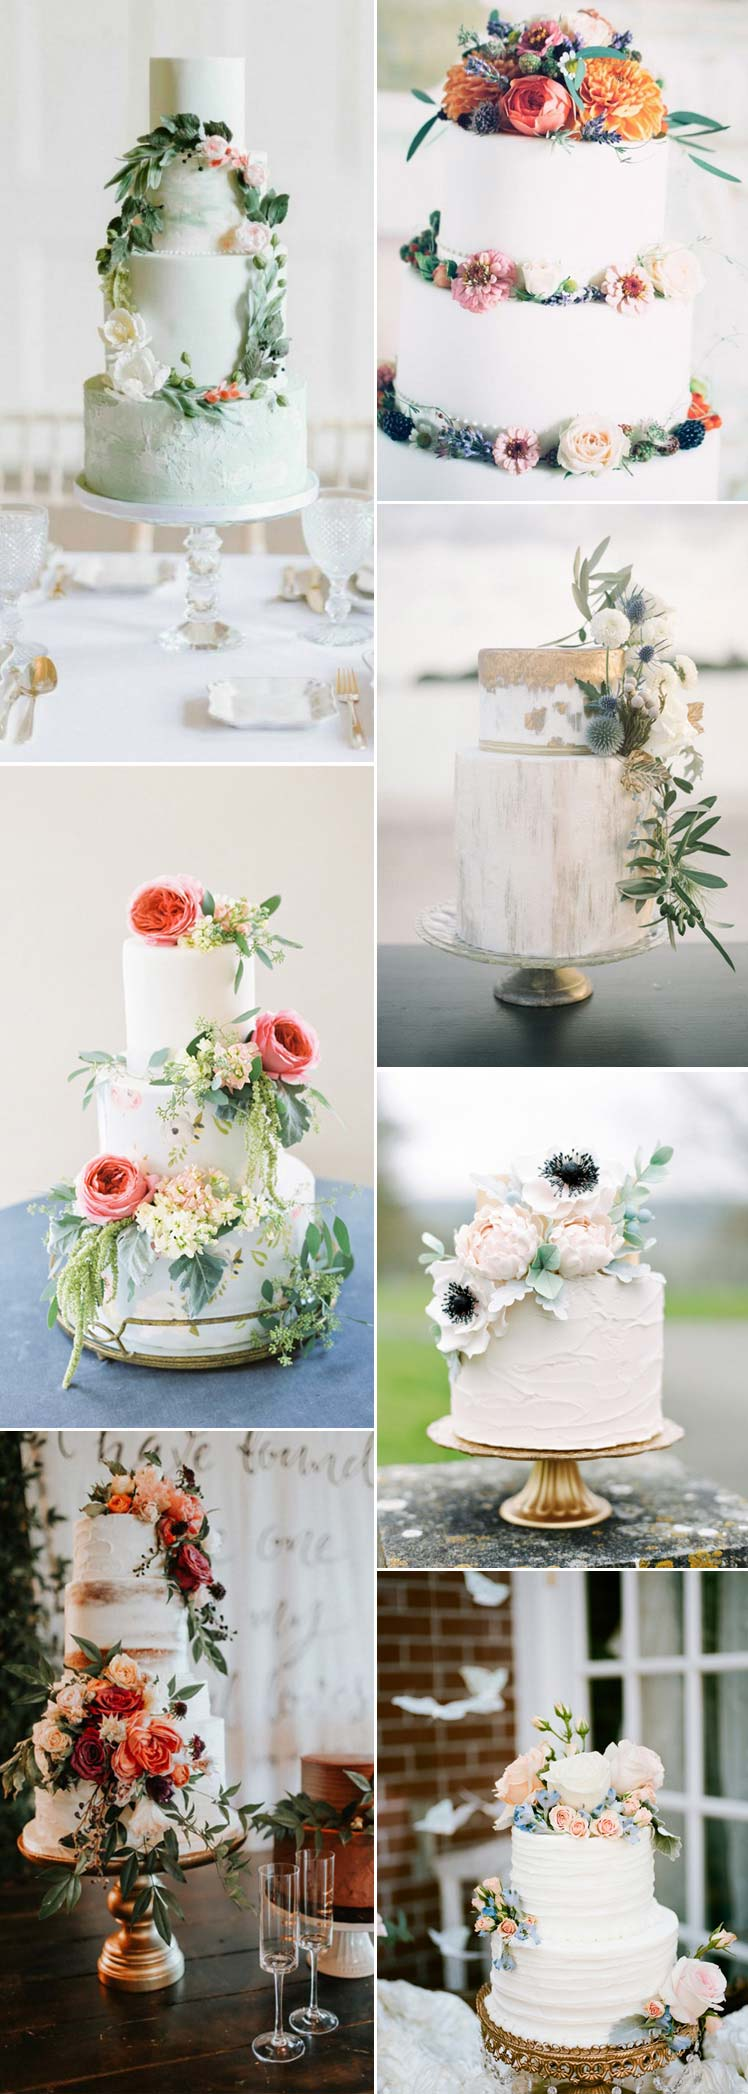 divine wedding cakes with flowers